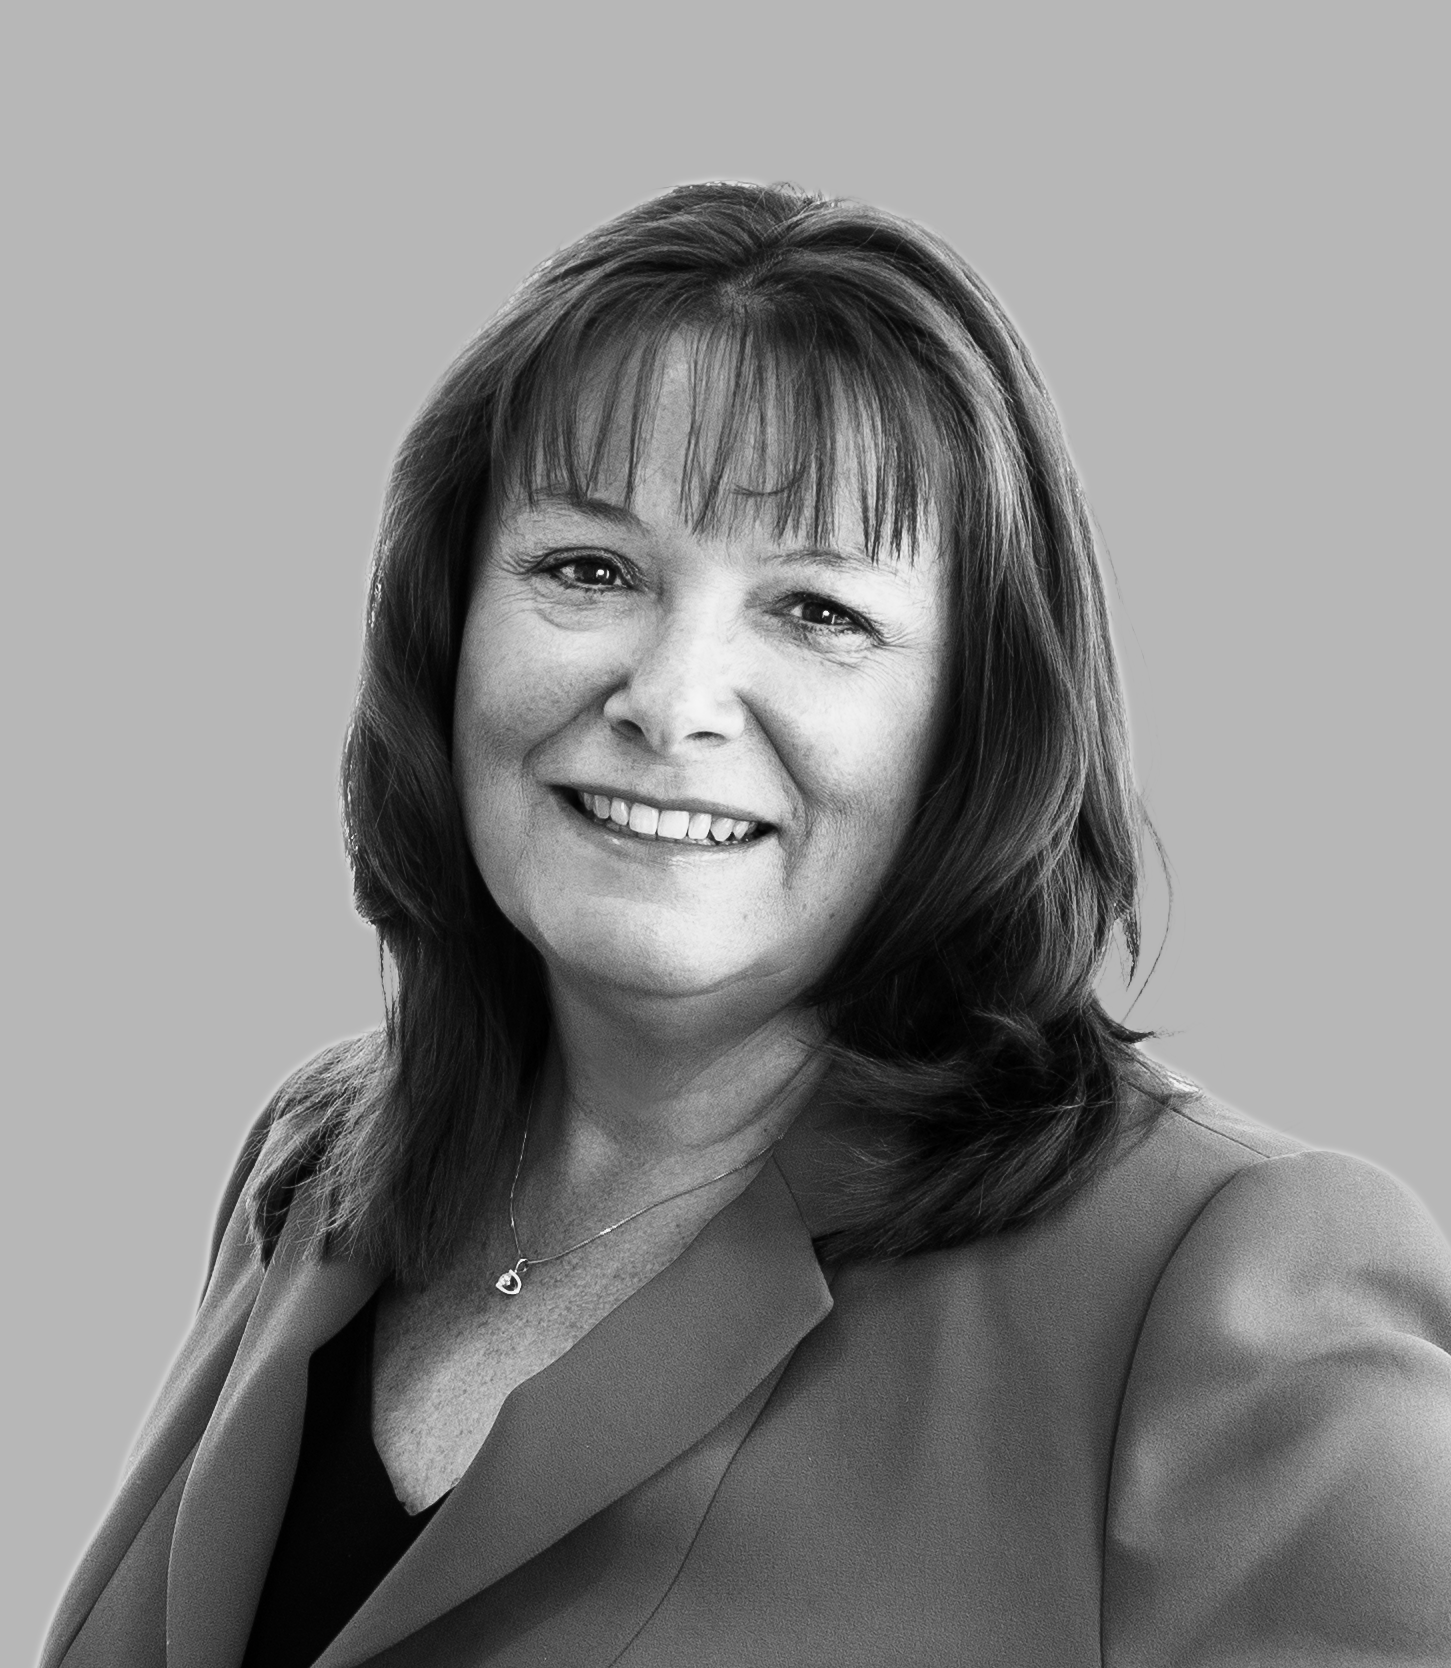 Image of Lesley Sewell